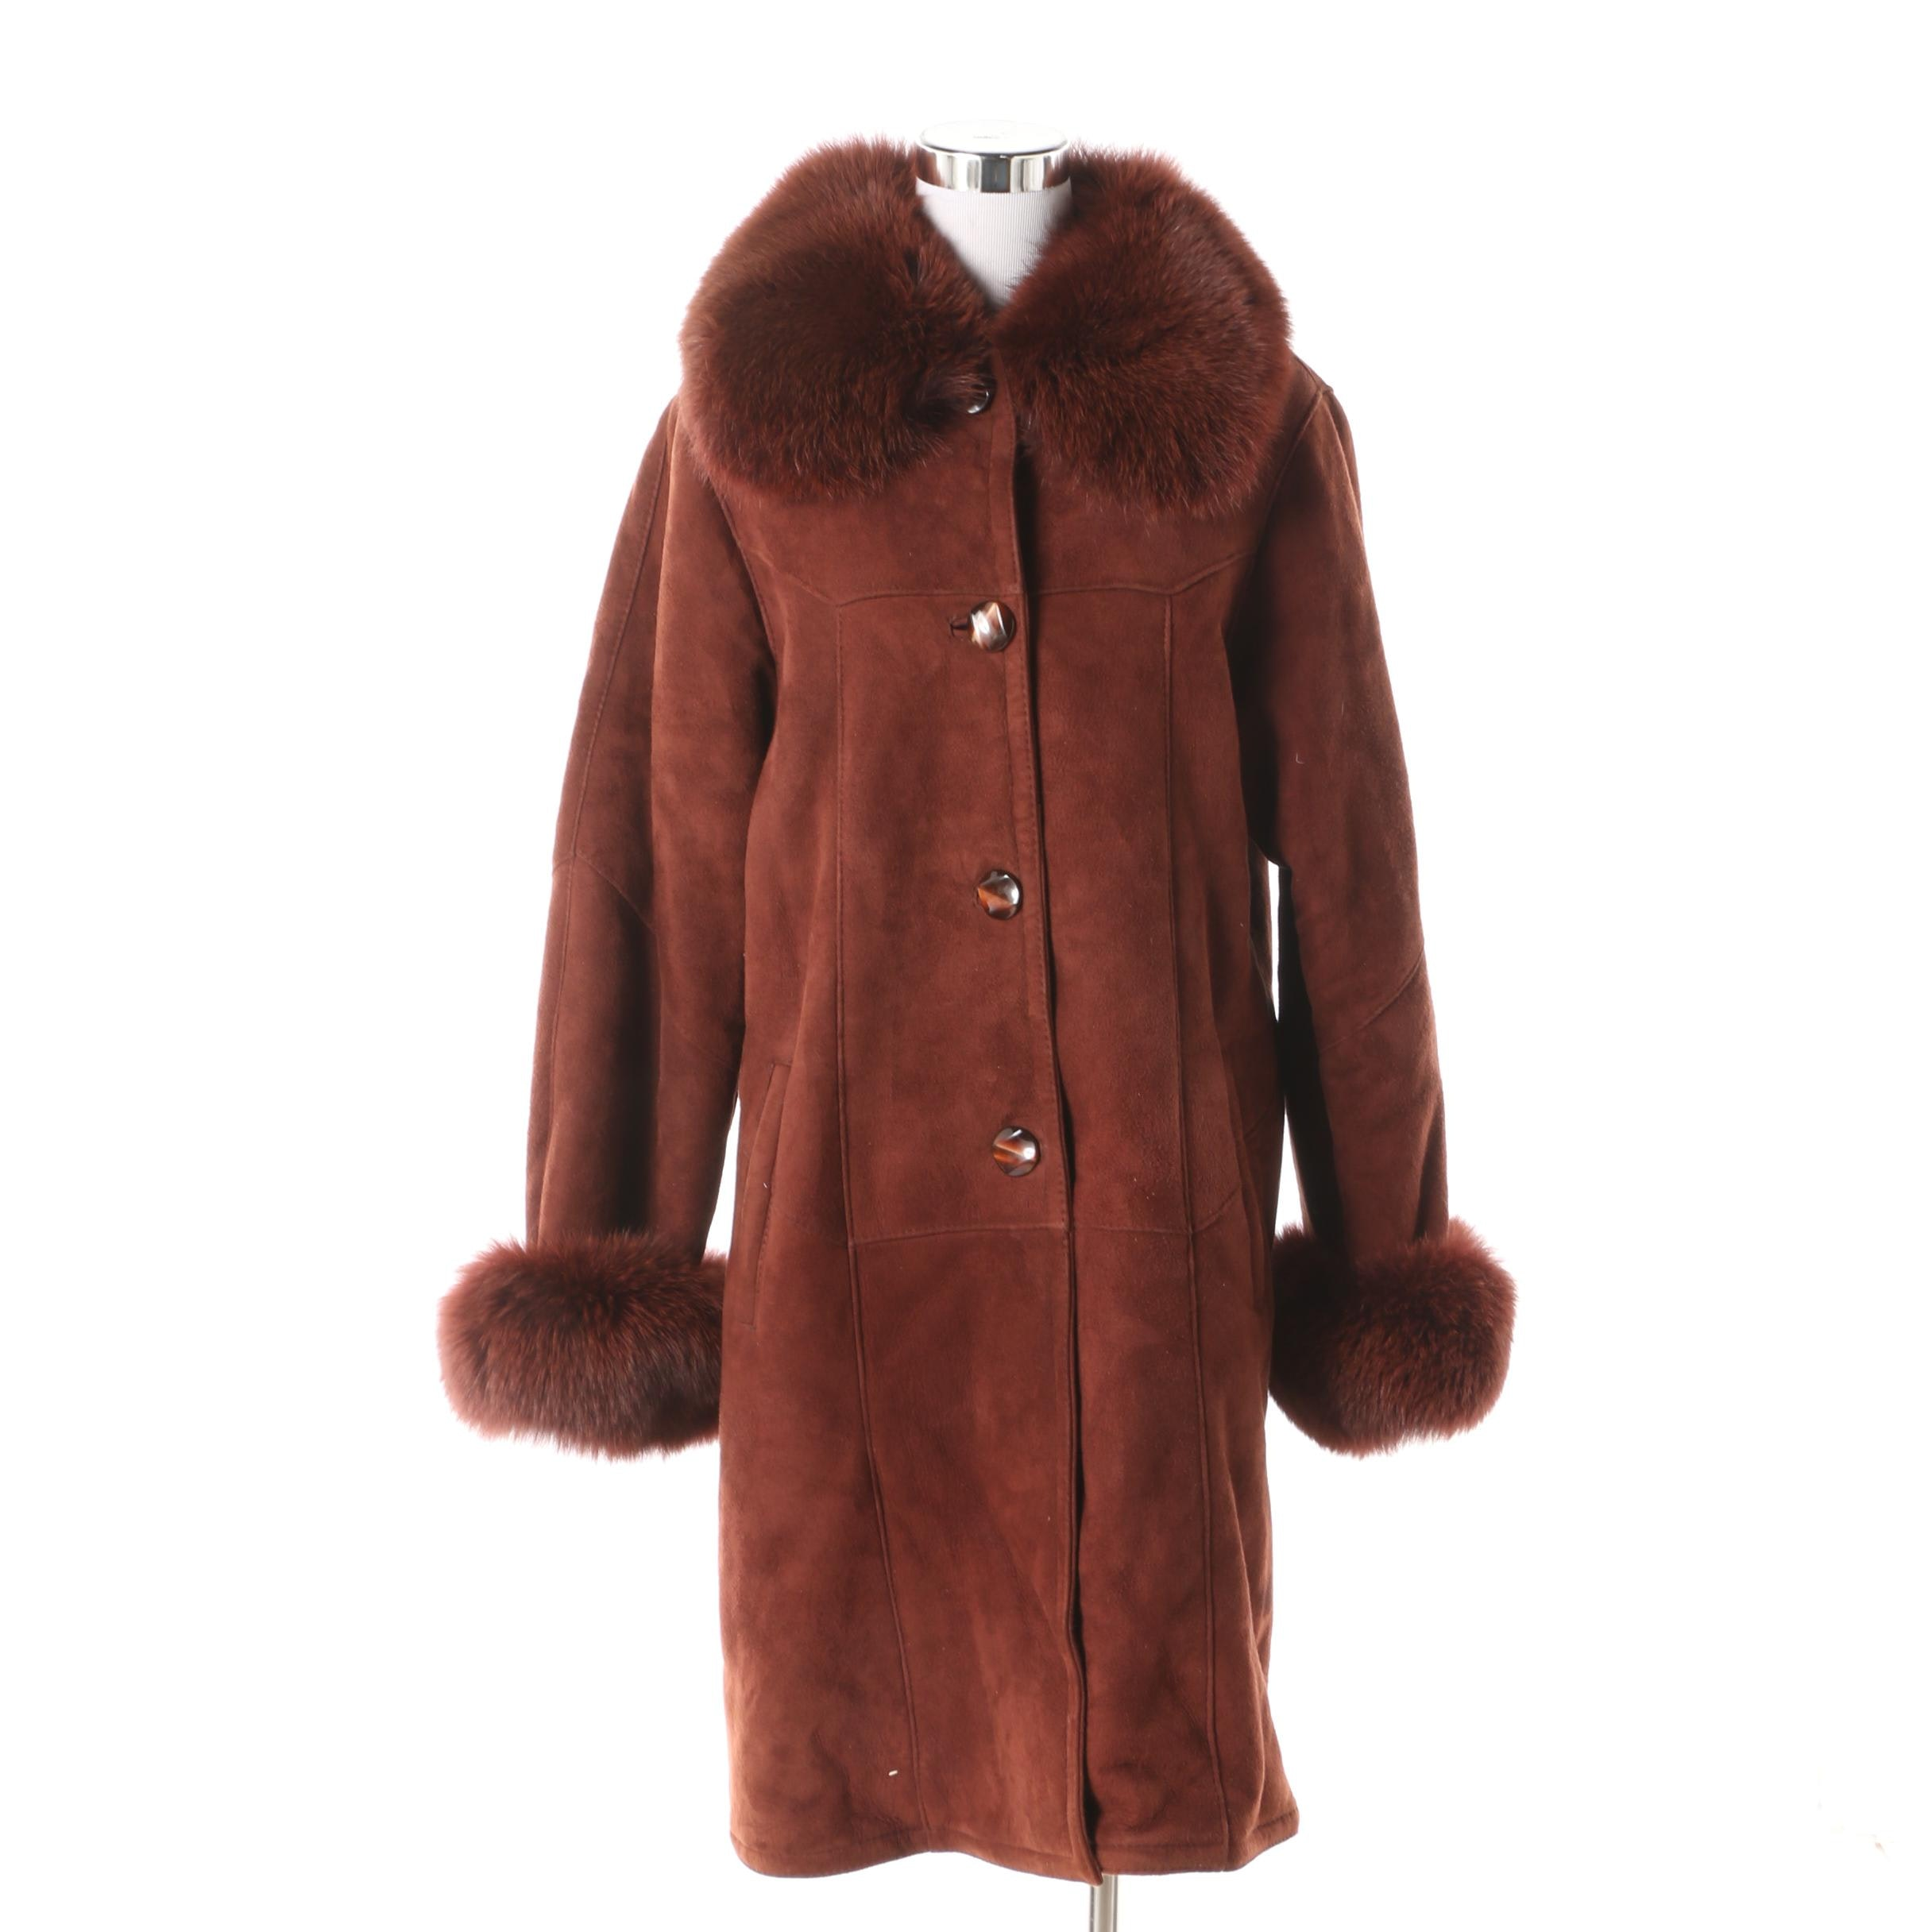 Women's Harlin Rust Brown Suede and Shearling Coat with Dyed Fox Fur Trim